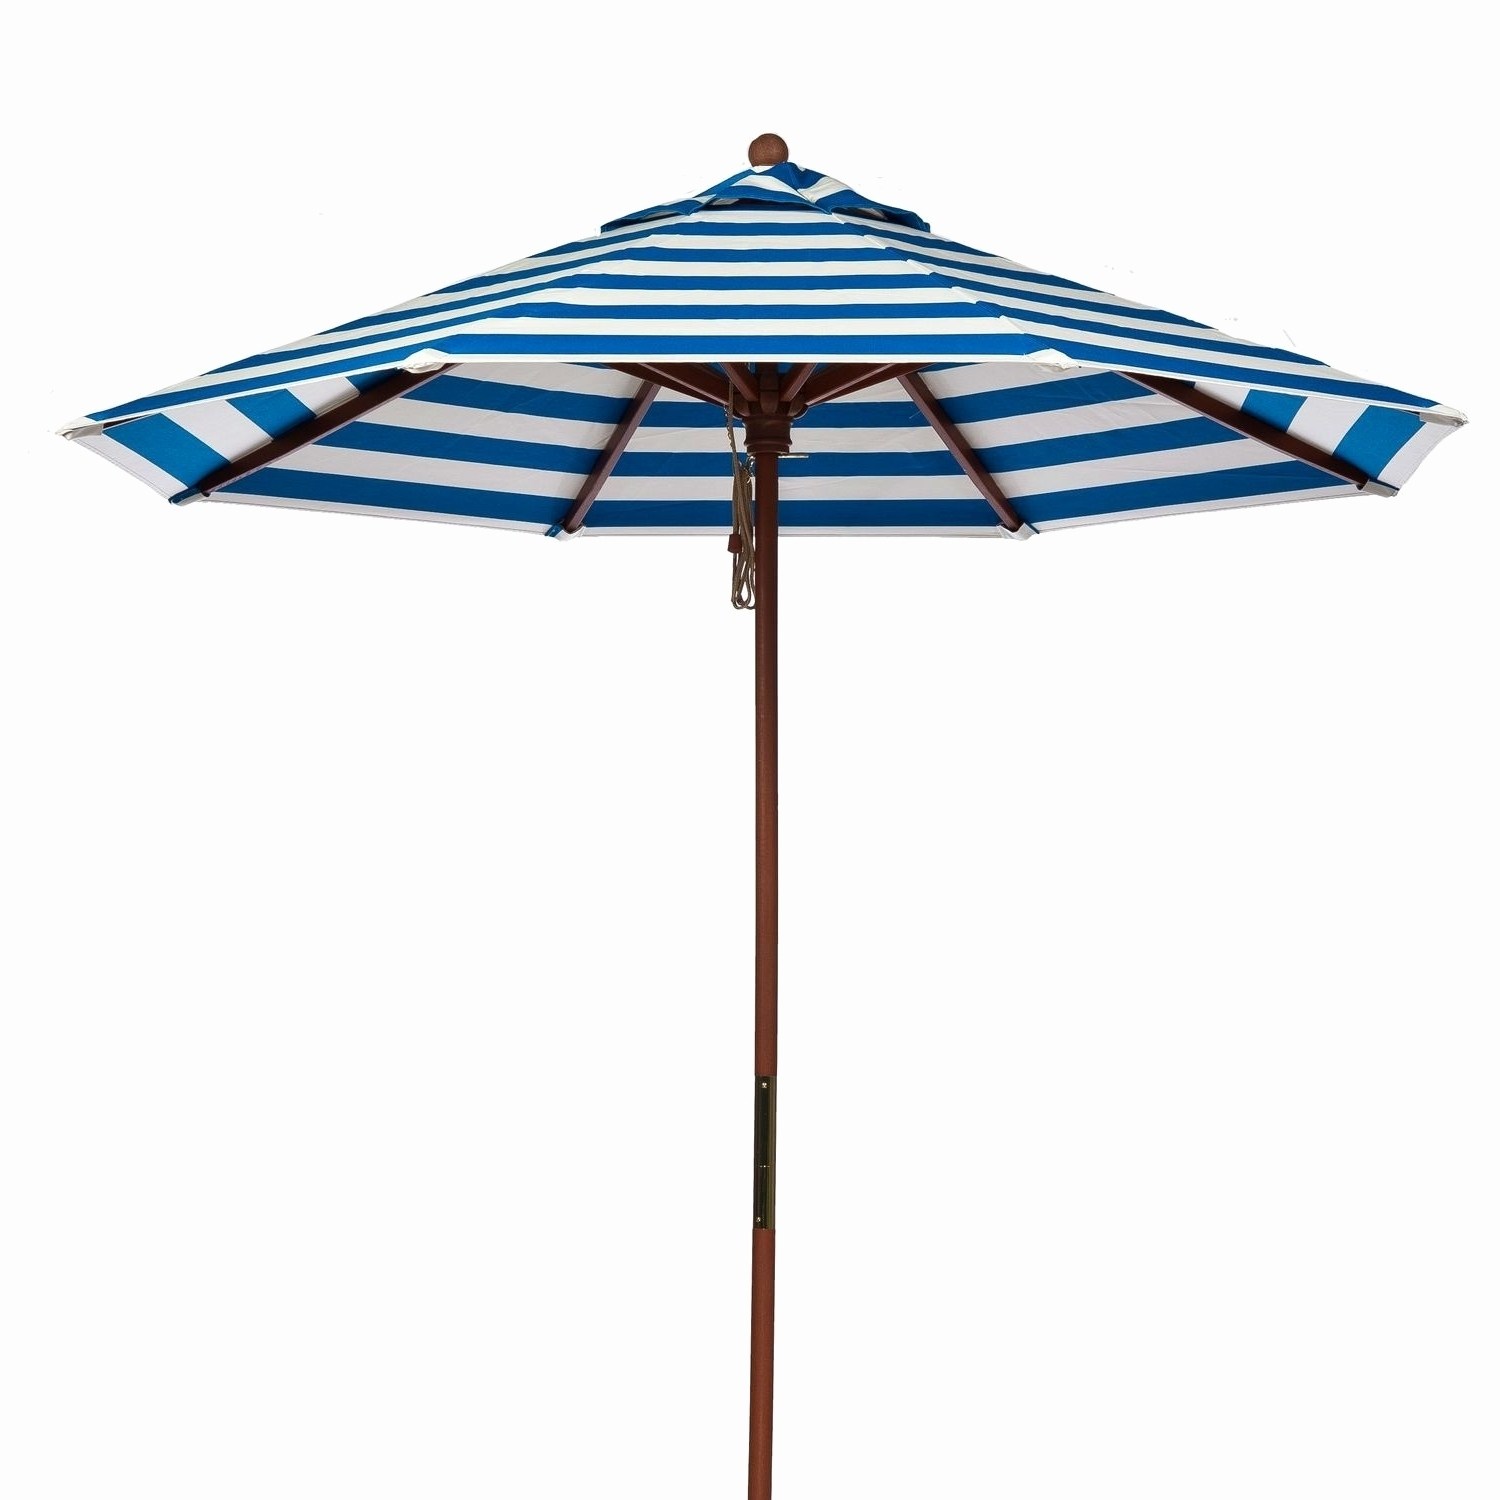 2019 Patio Umbrellas With White Pole With Navy Blue Patio Umbrella With White Pole (View 19 of 20)